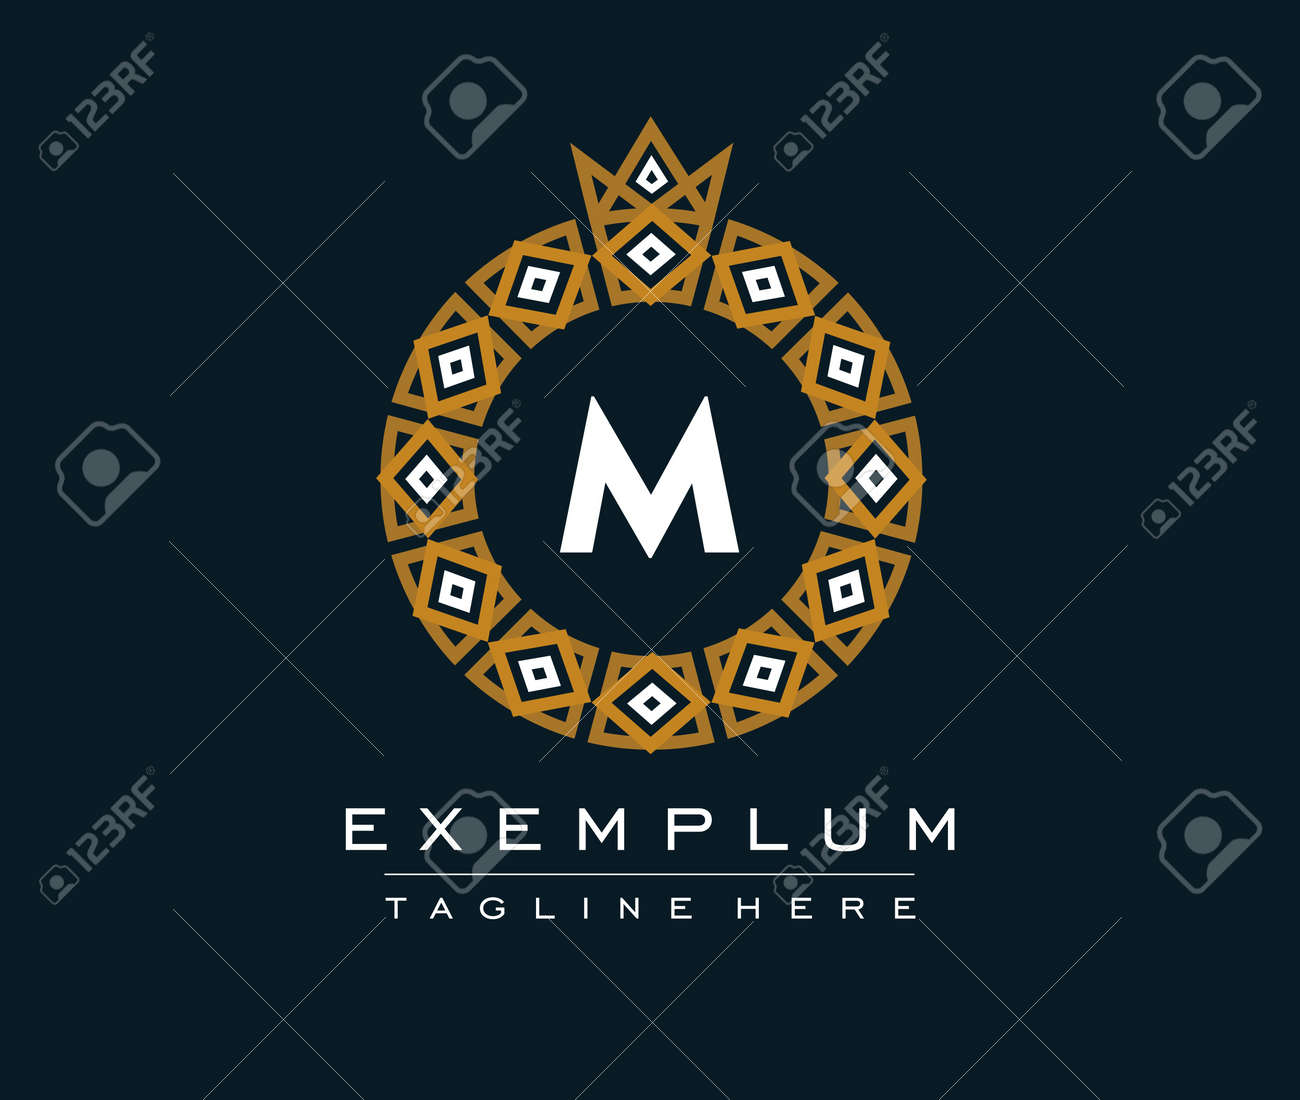 Ornamental round monogram, template for creating logos, labels. - 166195435